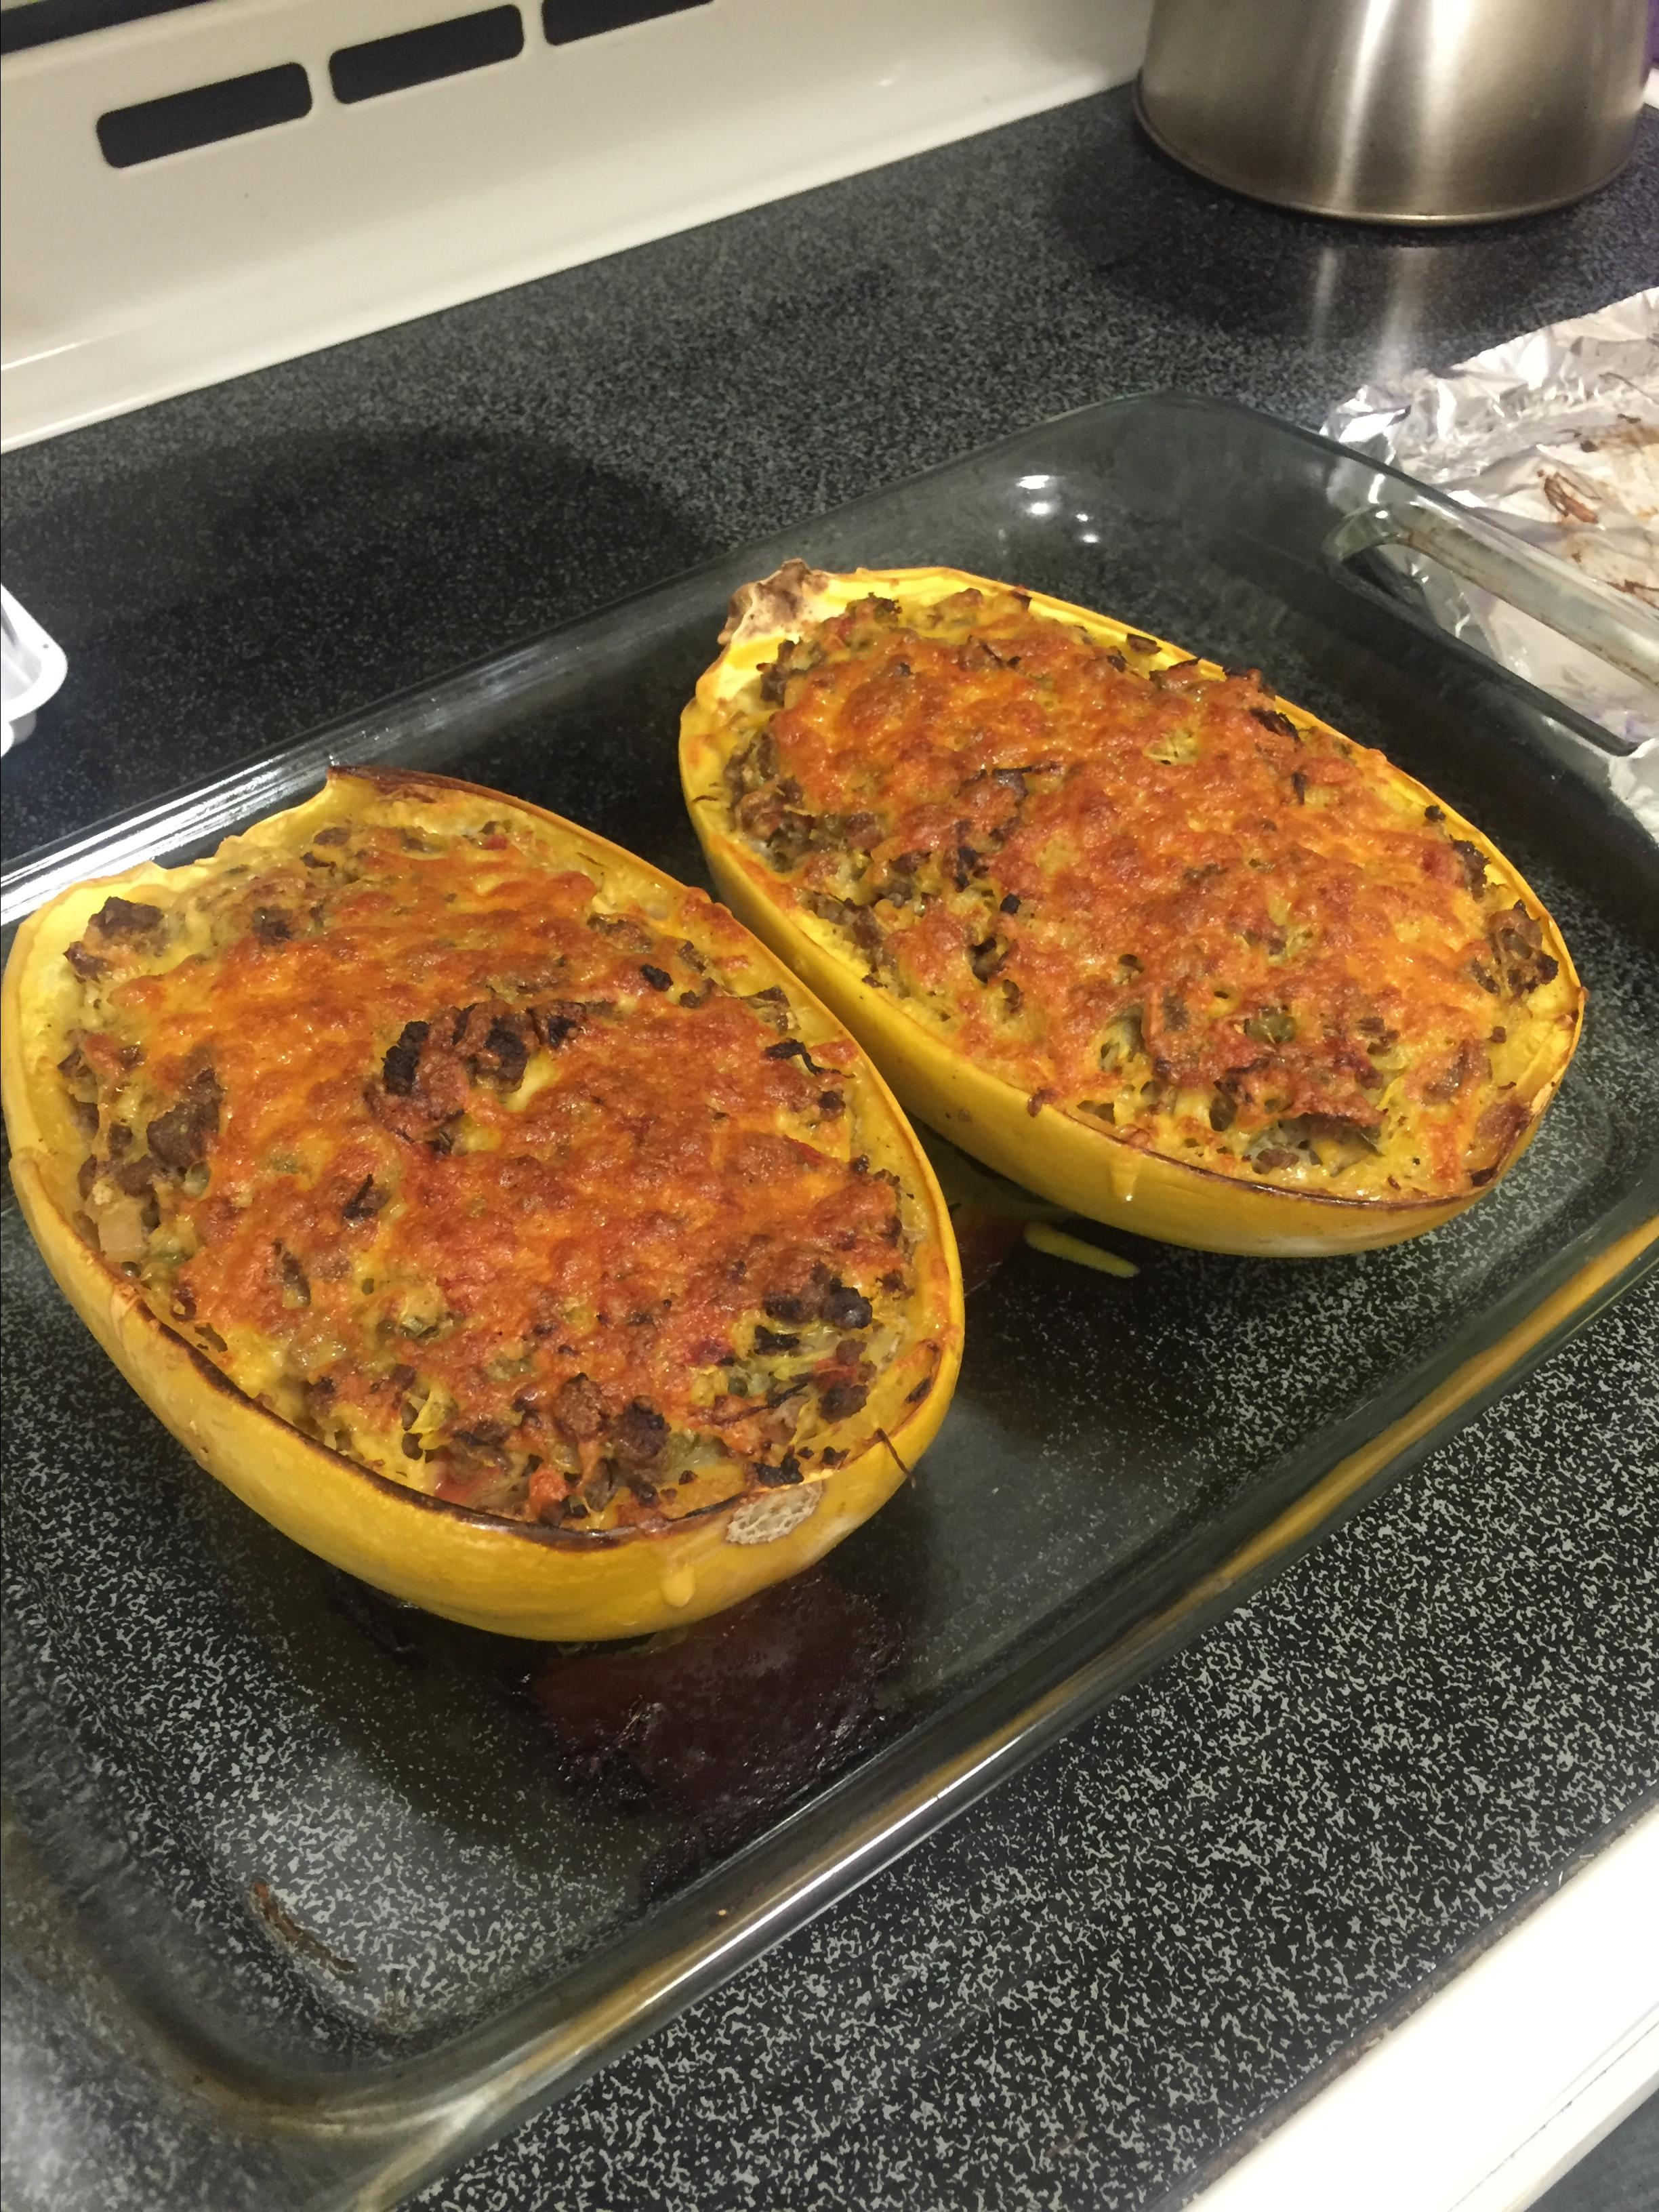 Spaghetti Squash Casserole in the Shell